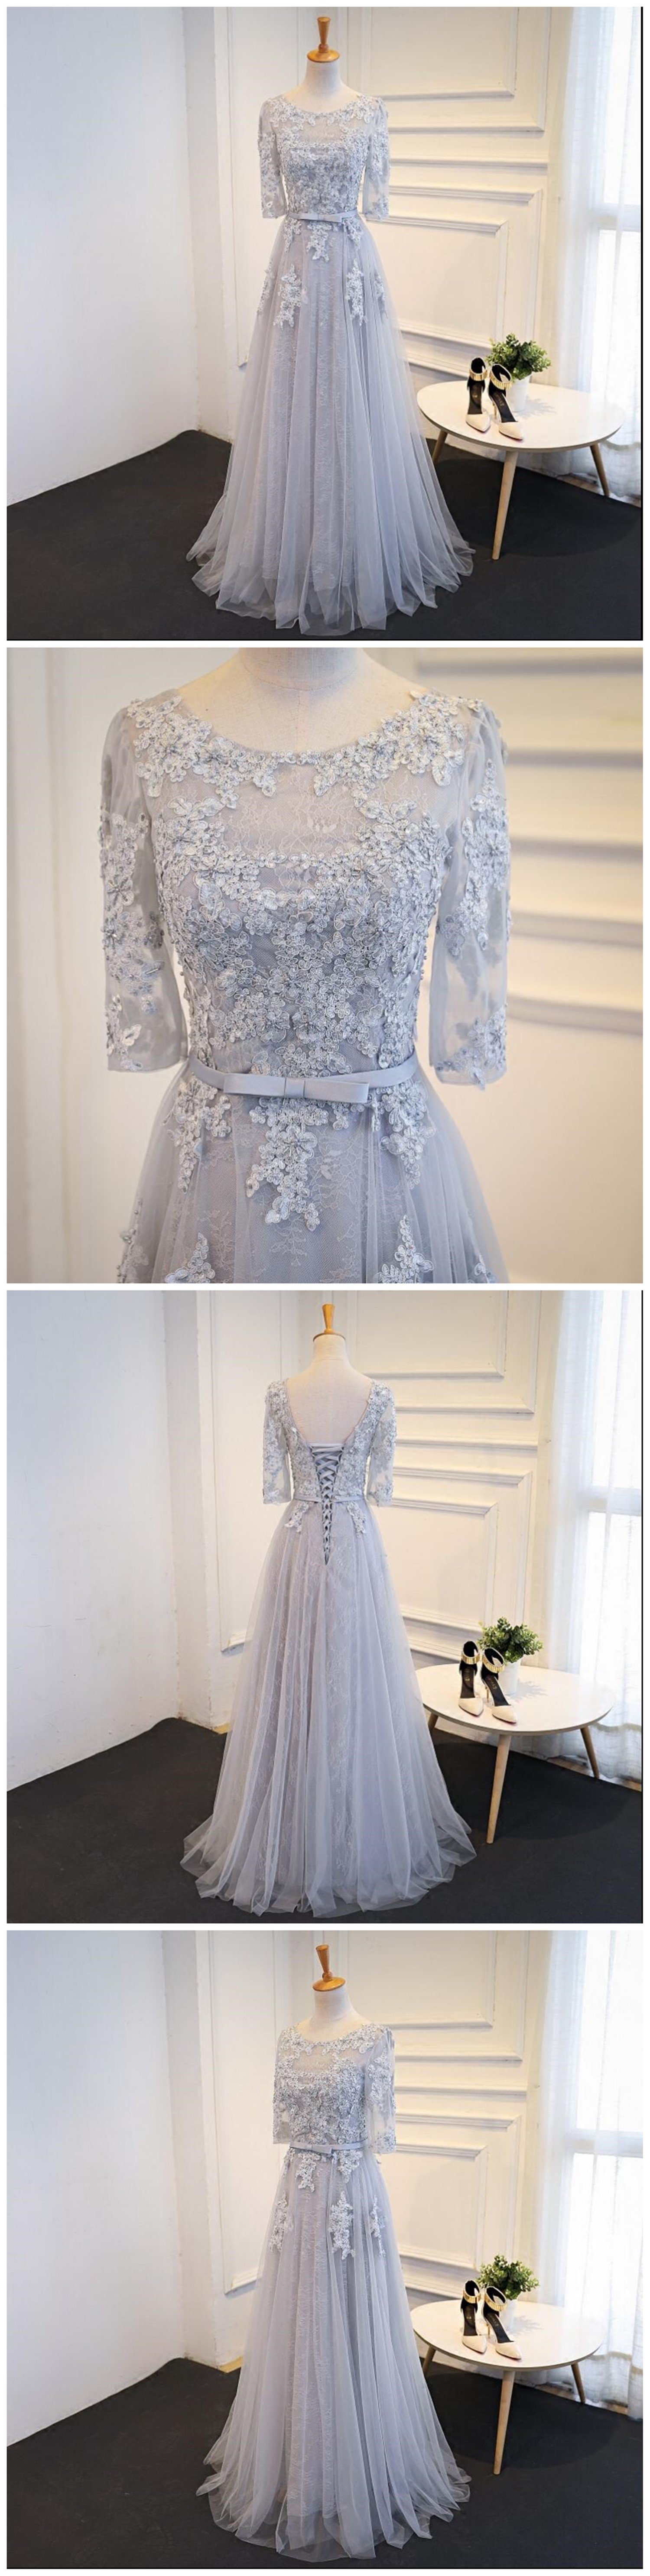 Long sleeve gray lace evening prom dresses party prom dresses